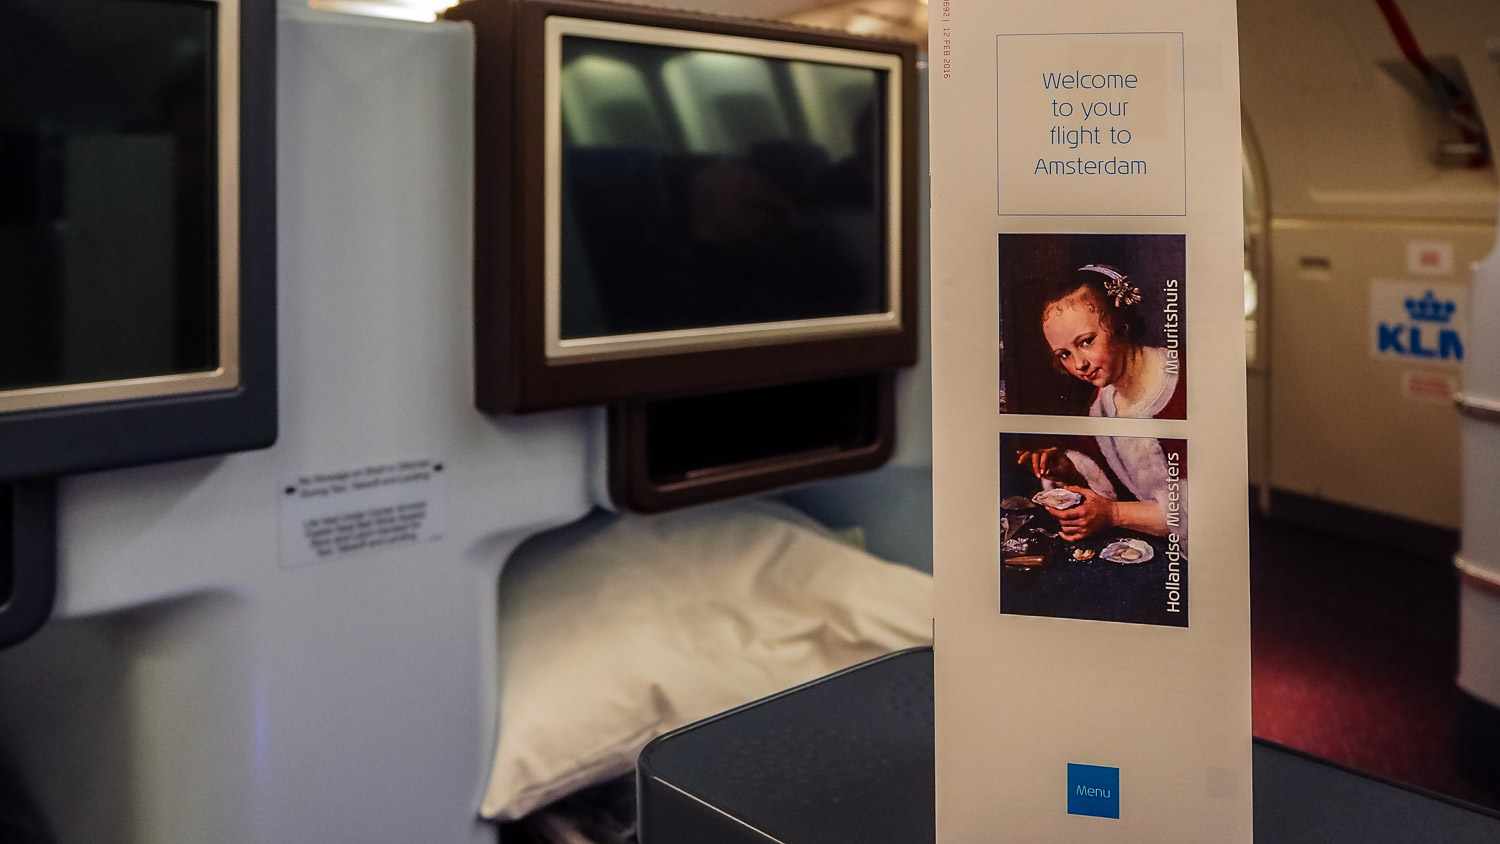 Welcome to your flight - KLM Business Class - by Britney Hope - The Wayward Post